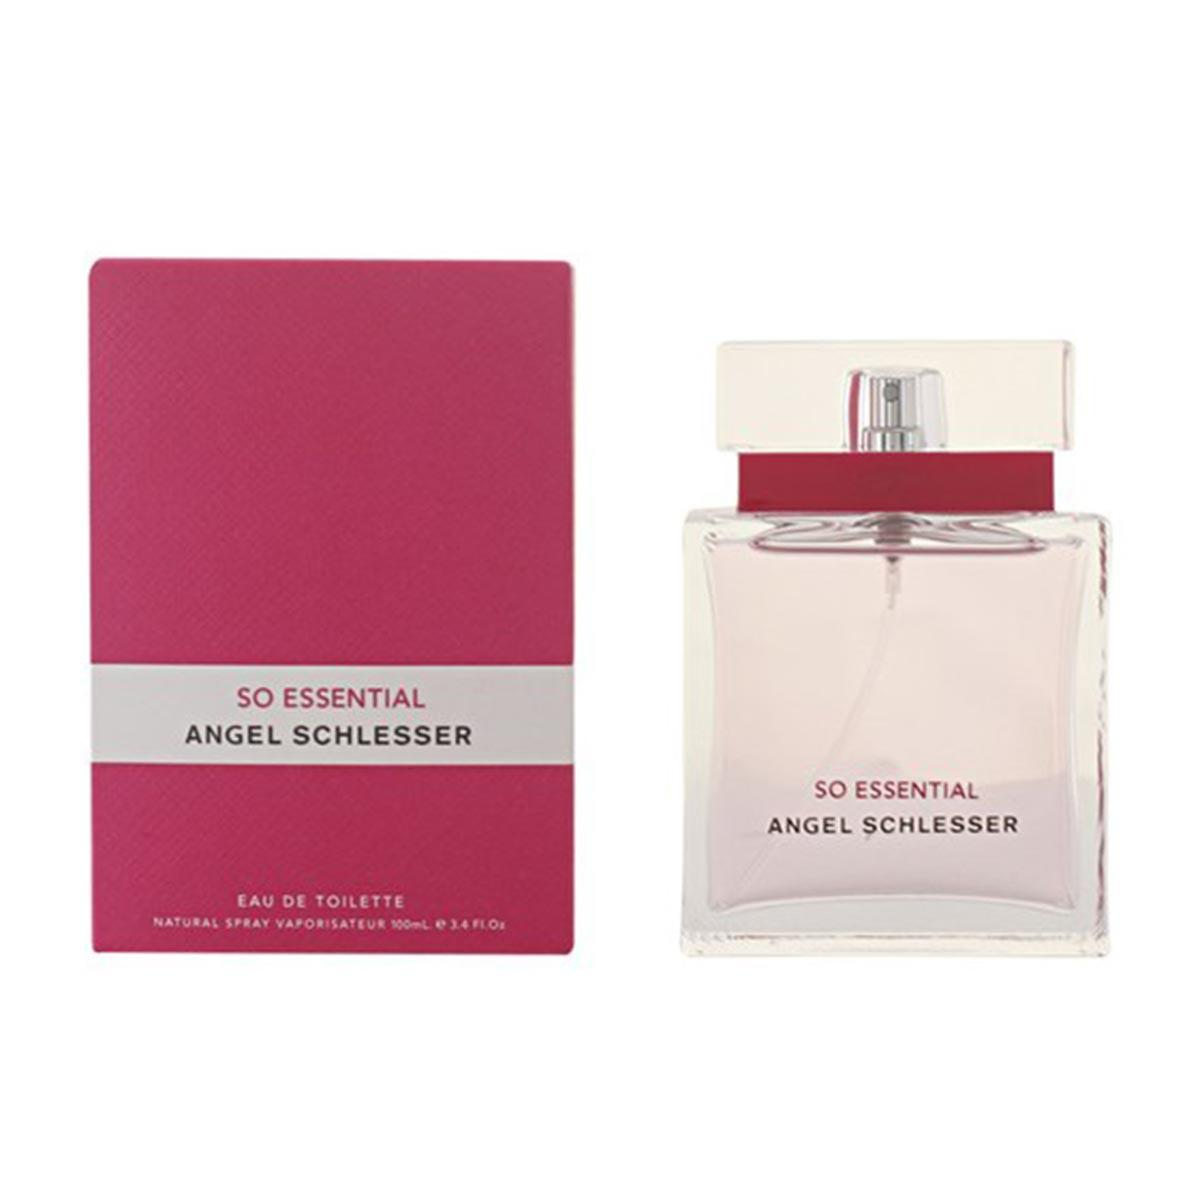 Angel schlesser So Essential 100 ml Eau De Toilette